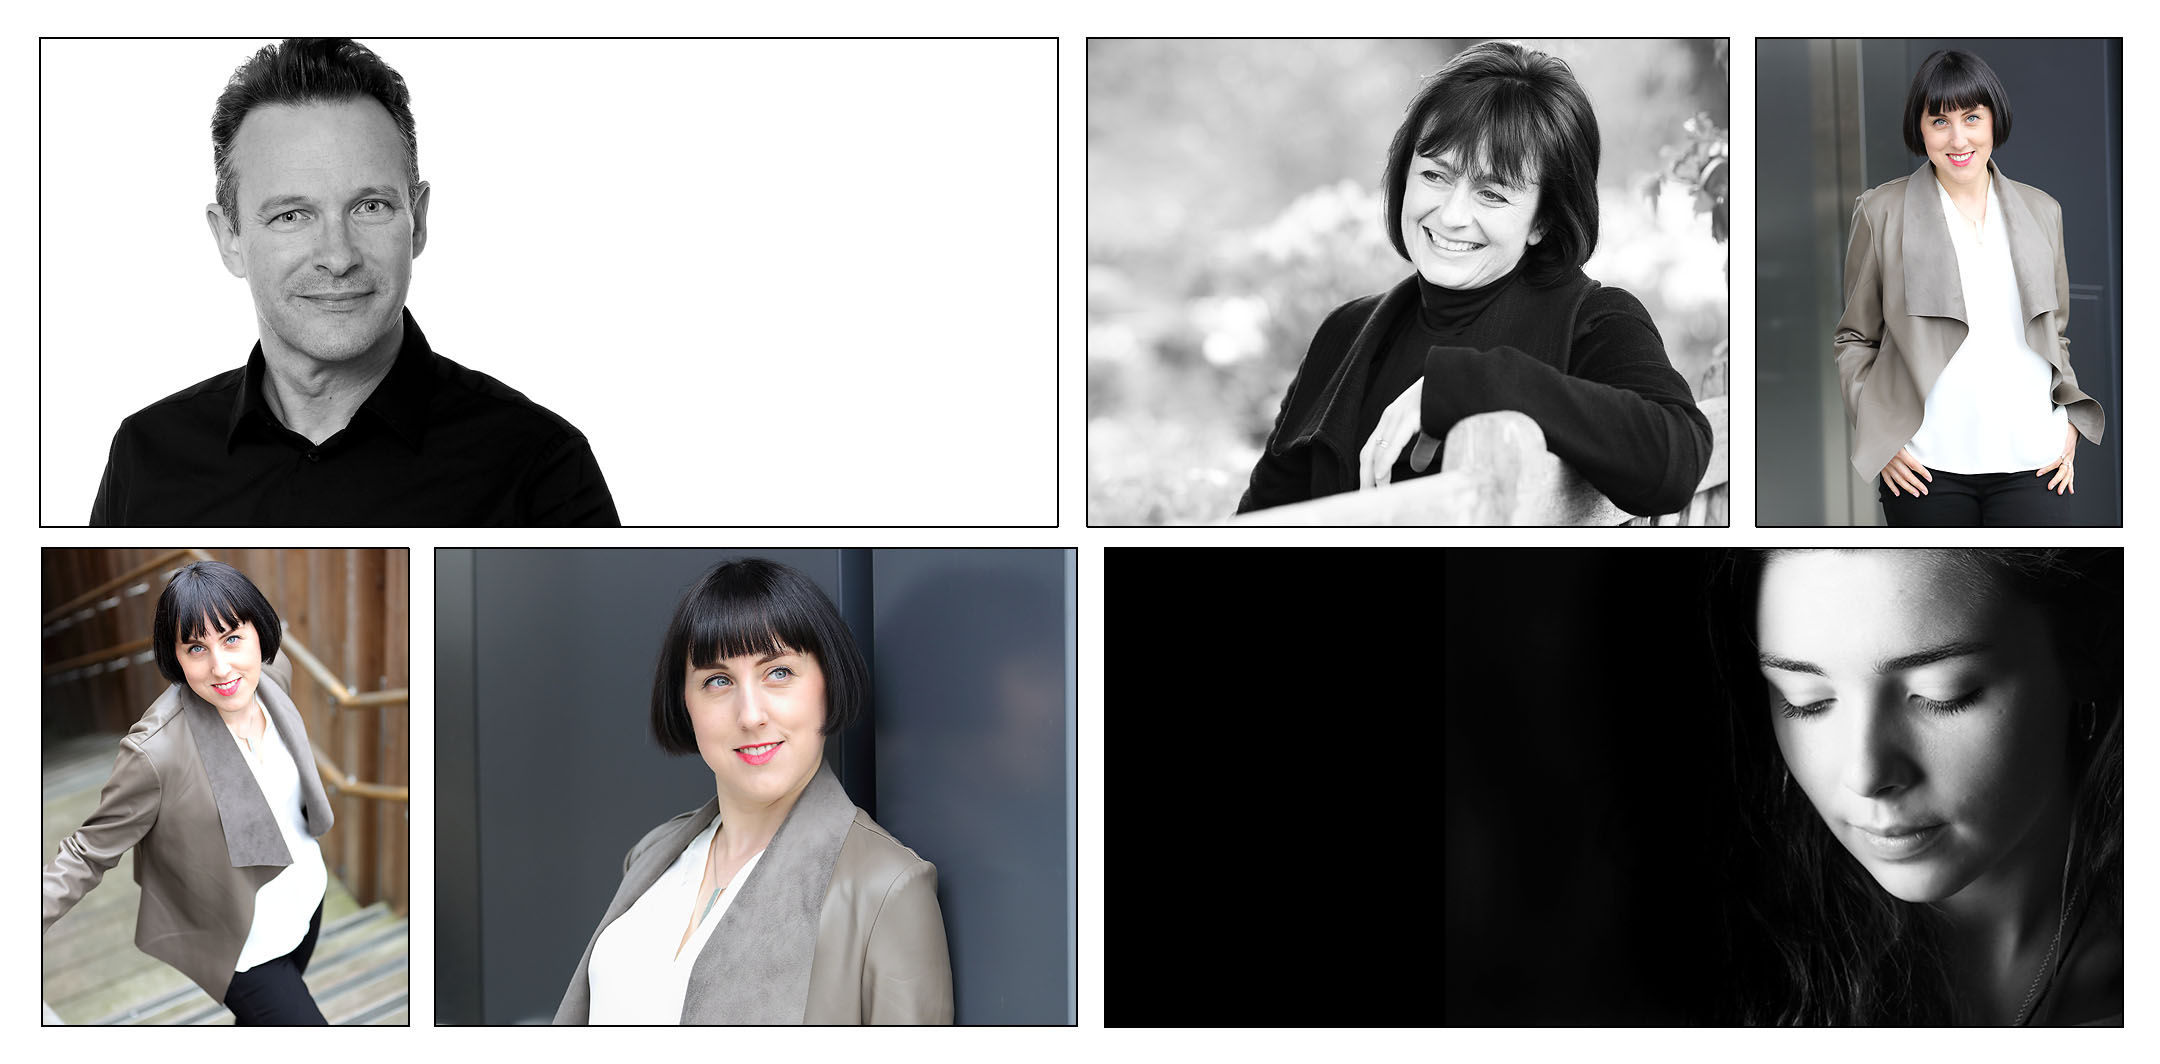 Portrait Photography In Harrogate, Leeds, York, Ripon Areas